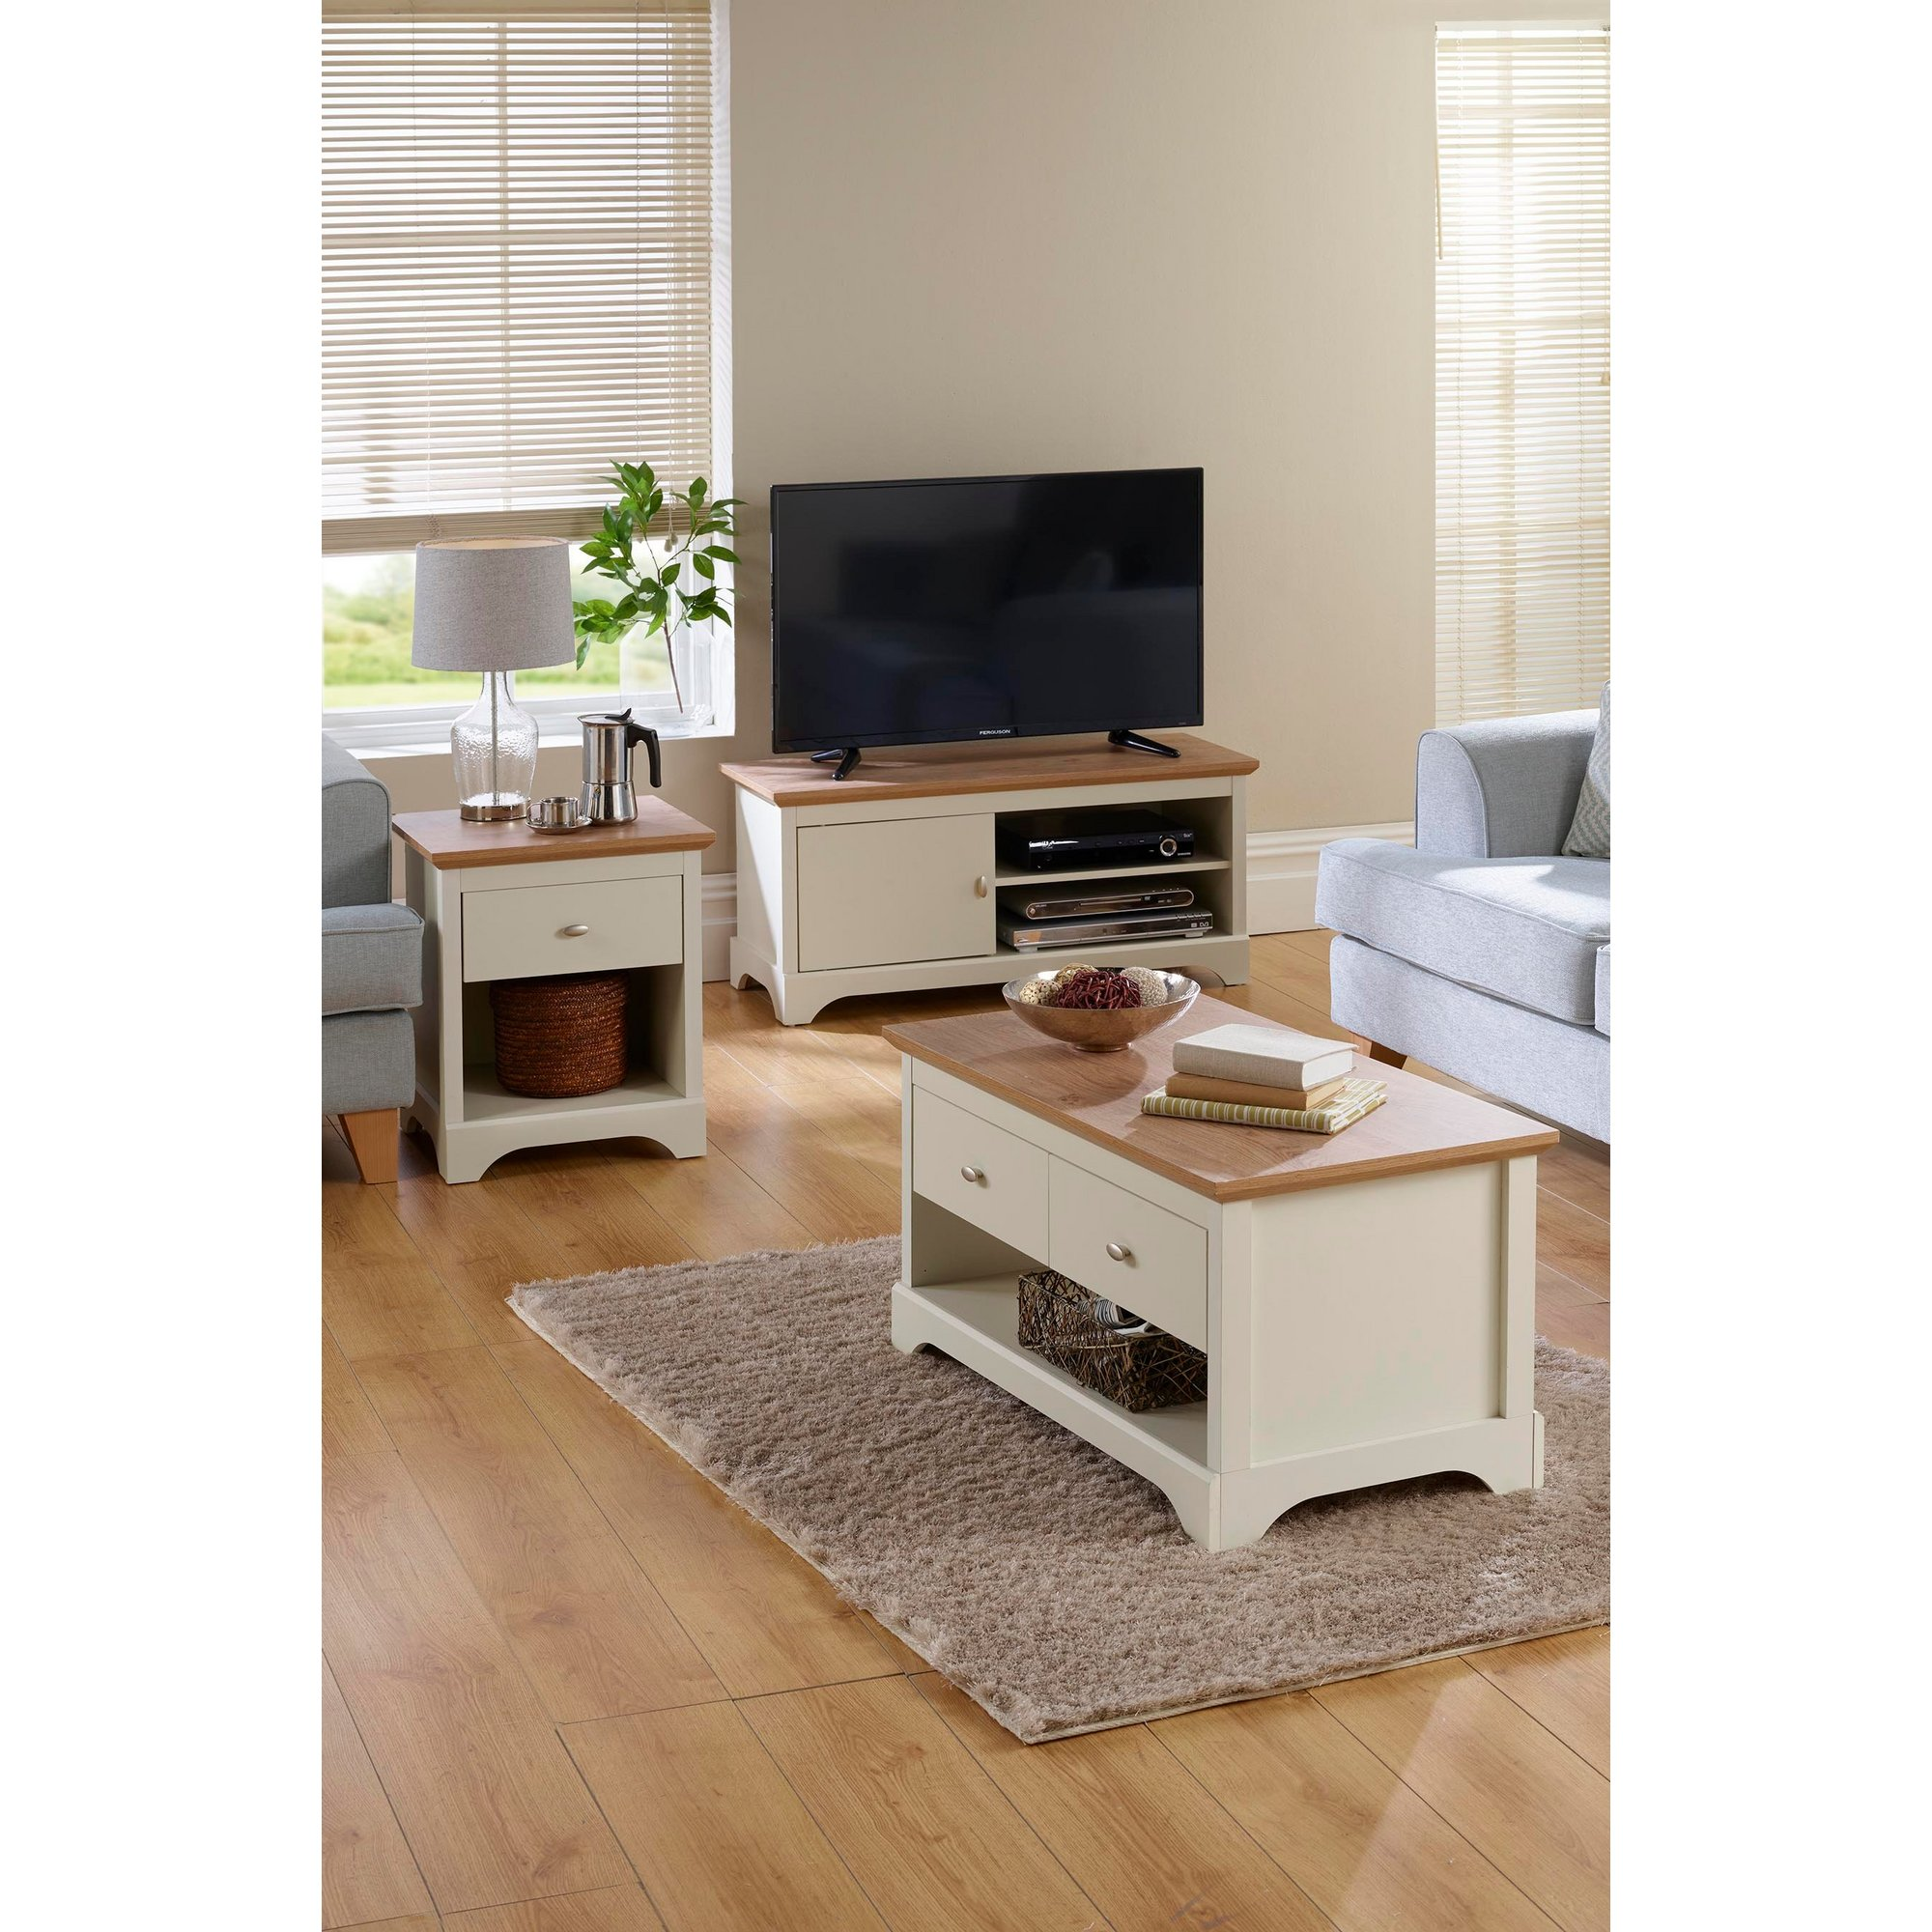 Image of 3-Piece Camberley Furniture Set